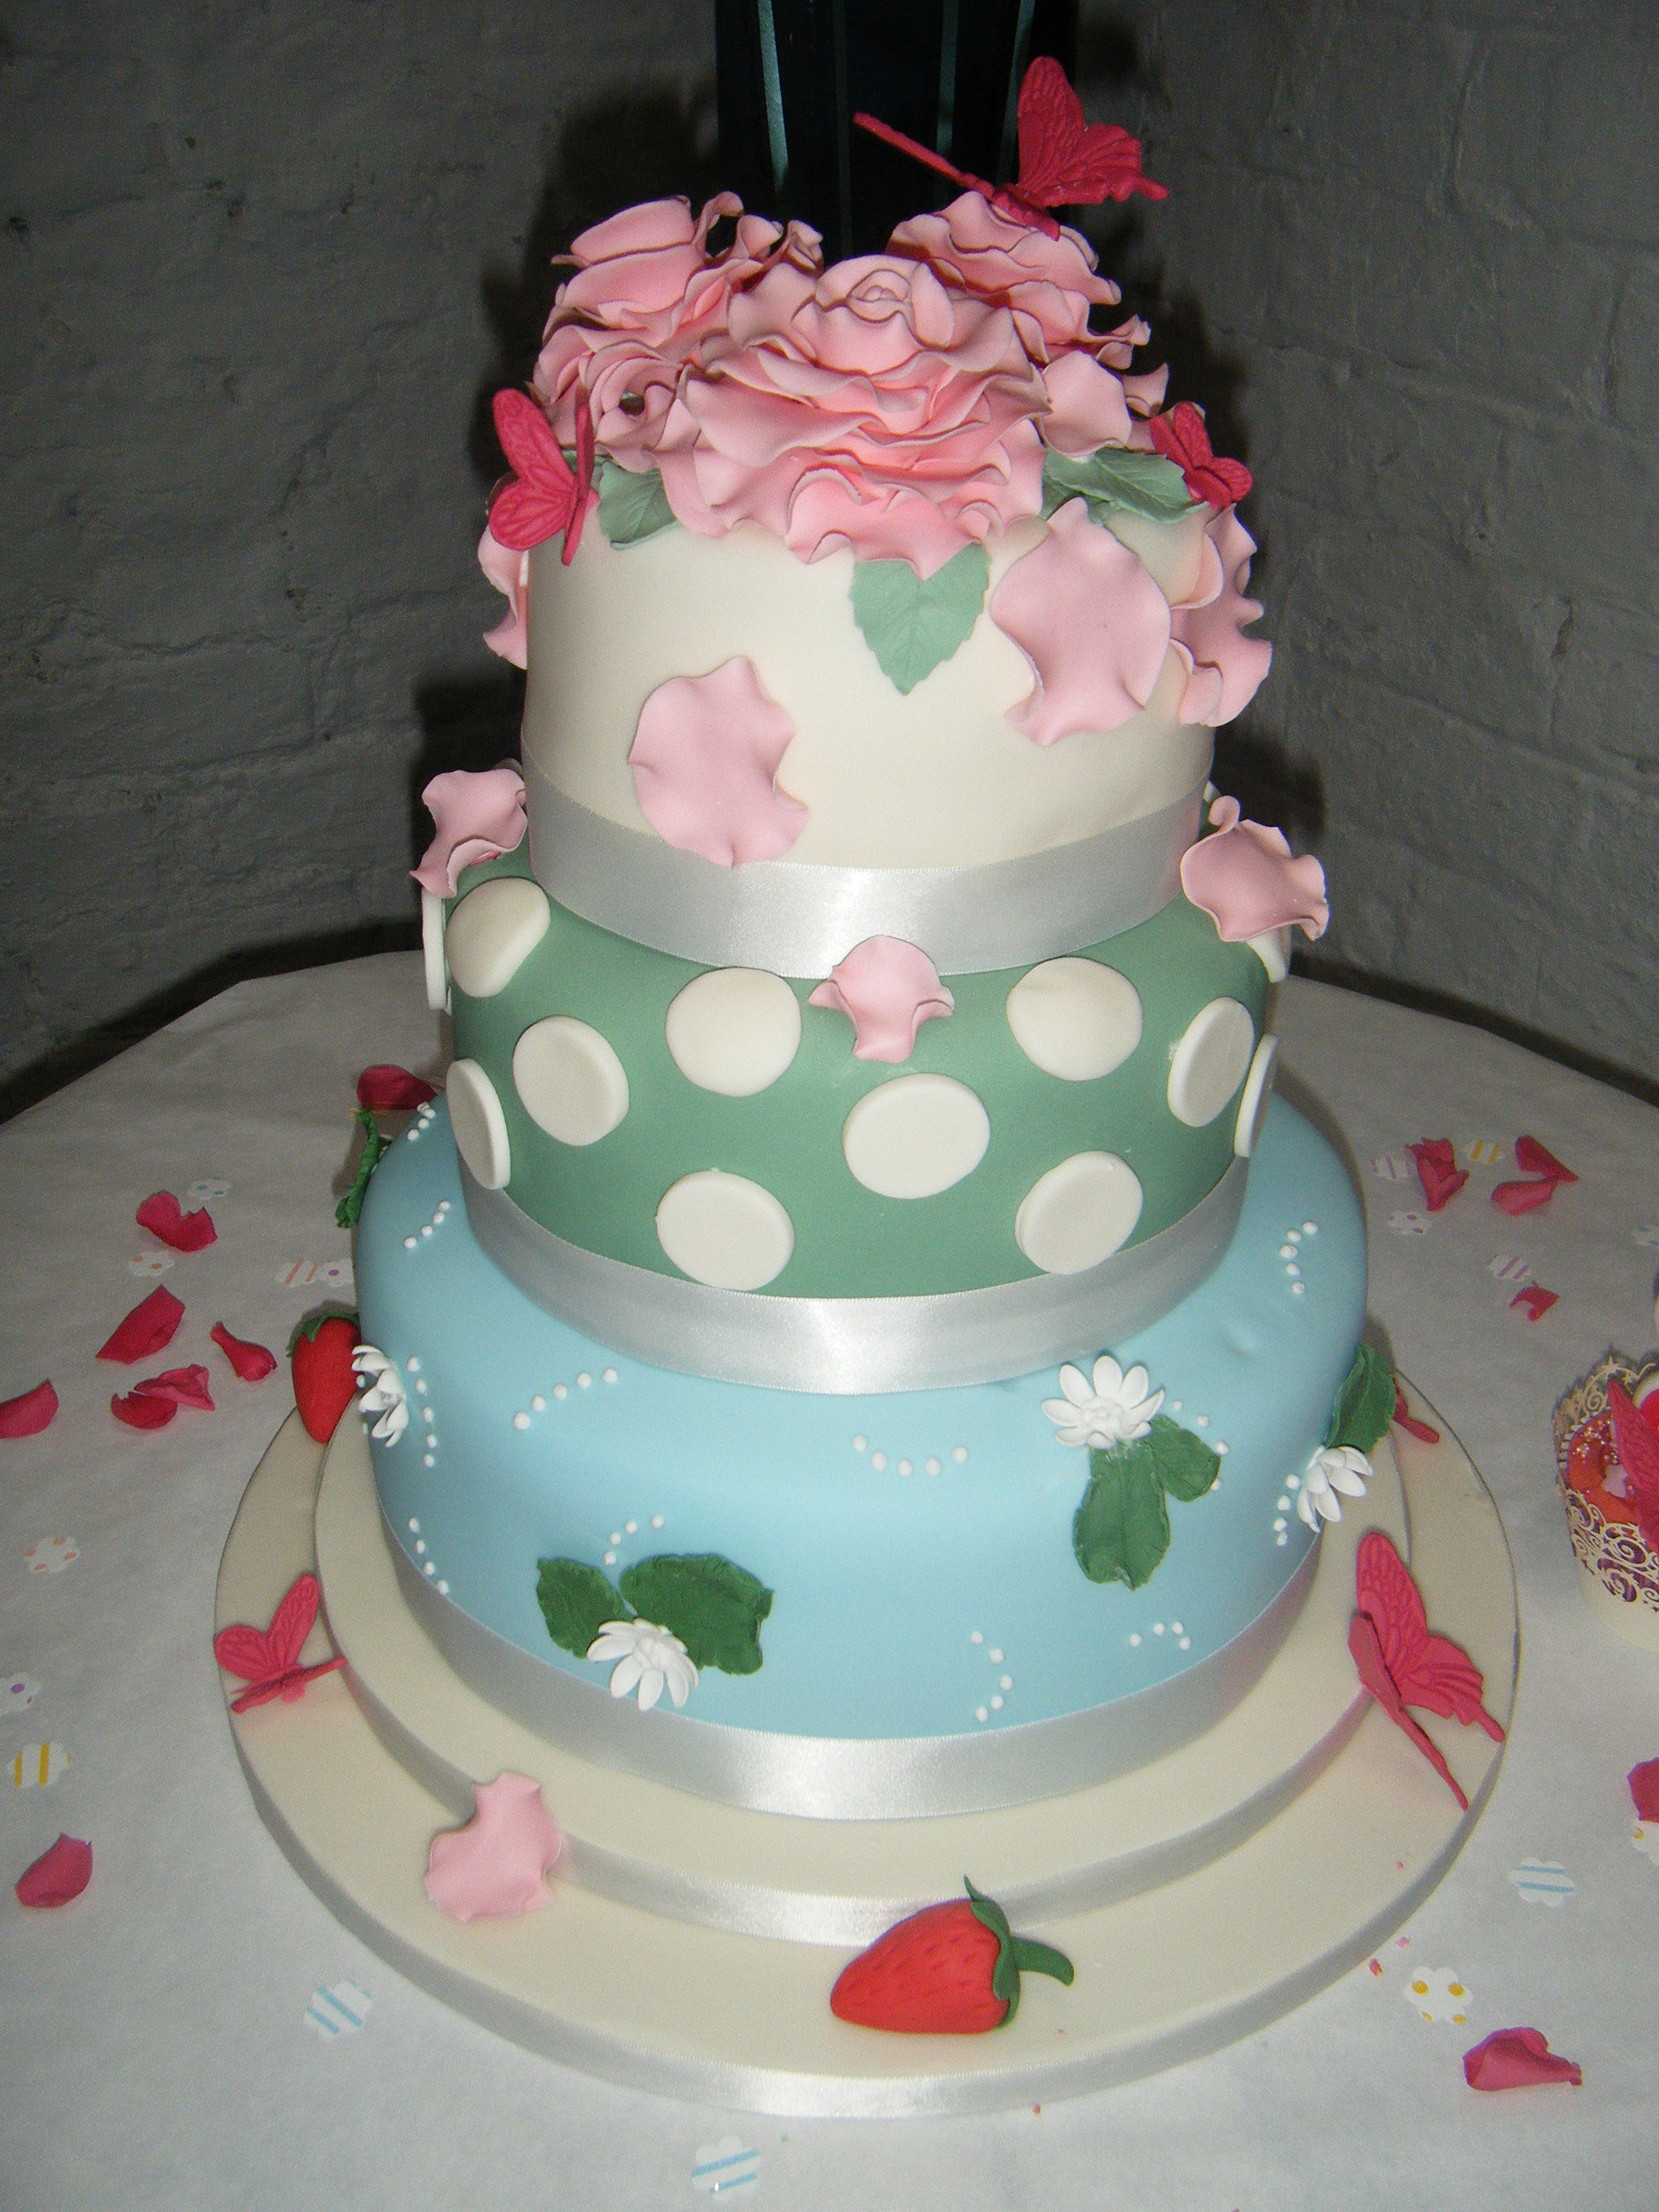 3 Tier Vintage Summer Wedding Cake